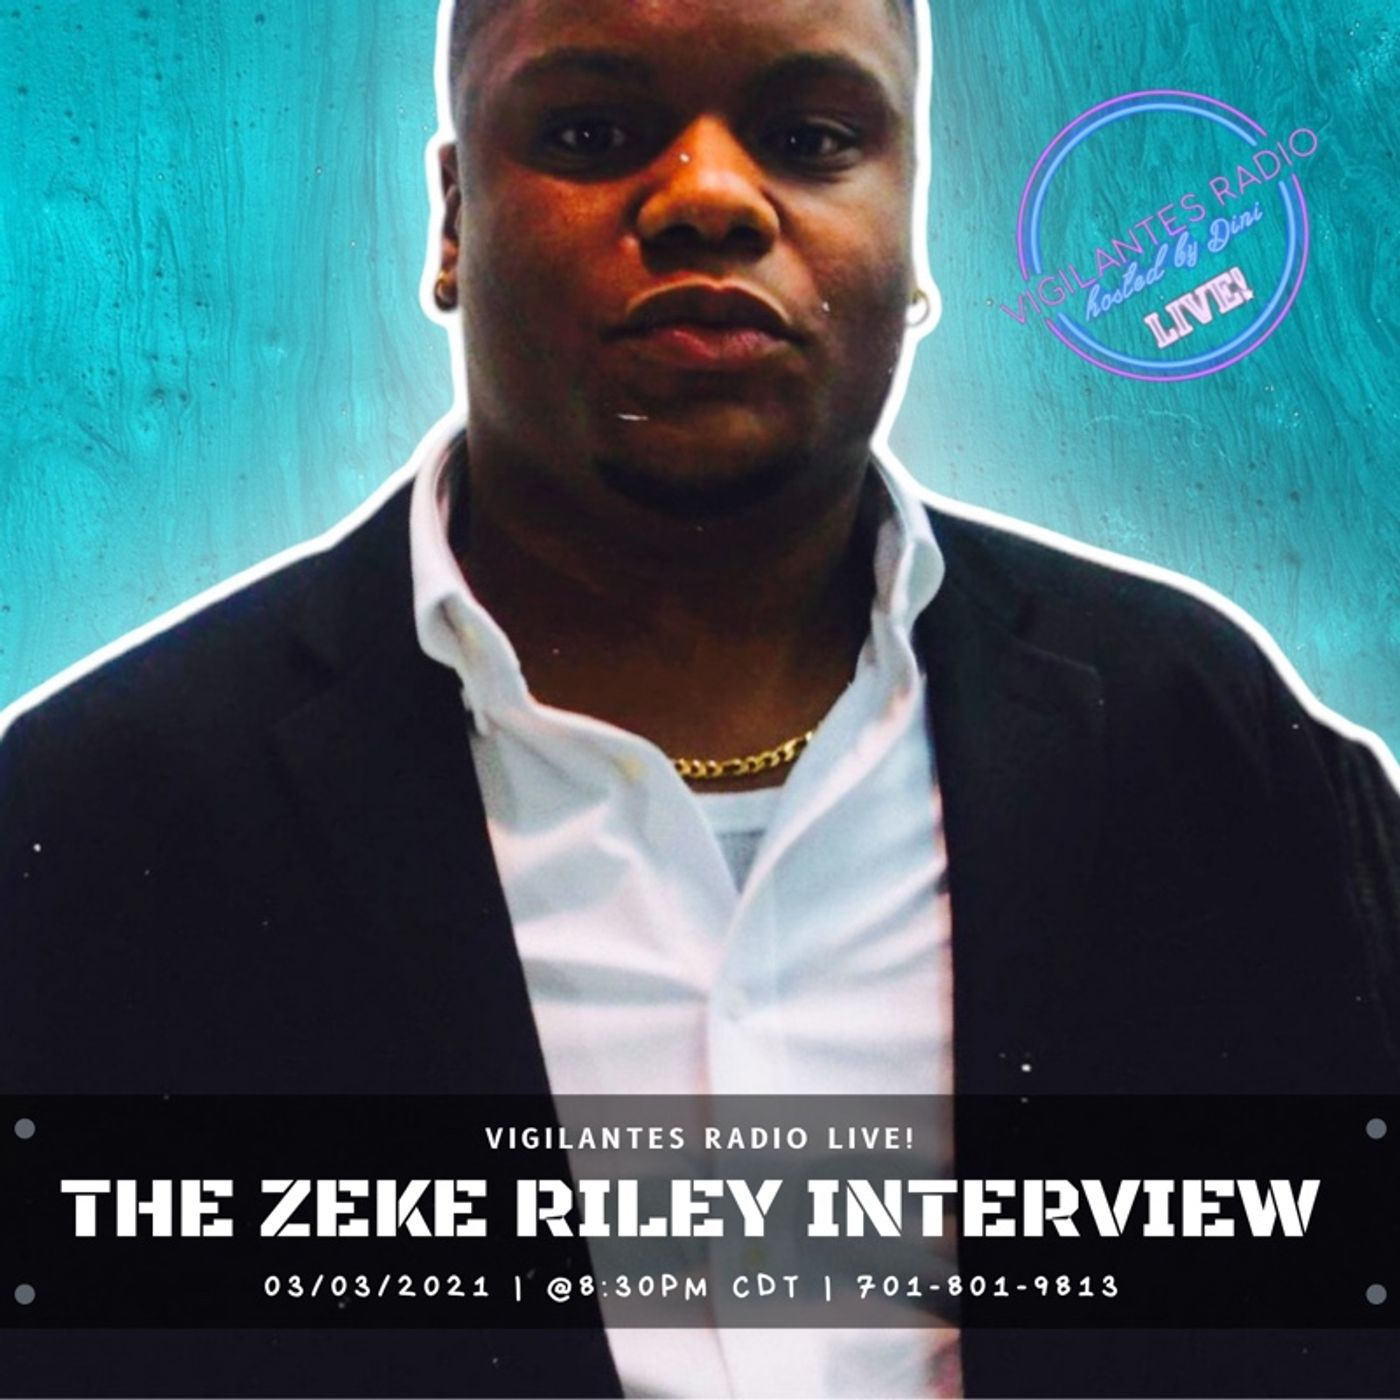 The Zeke Riley Interview.